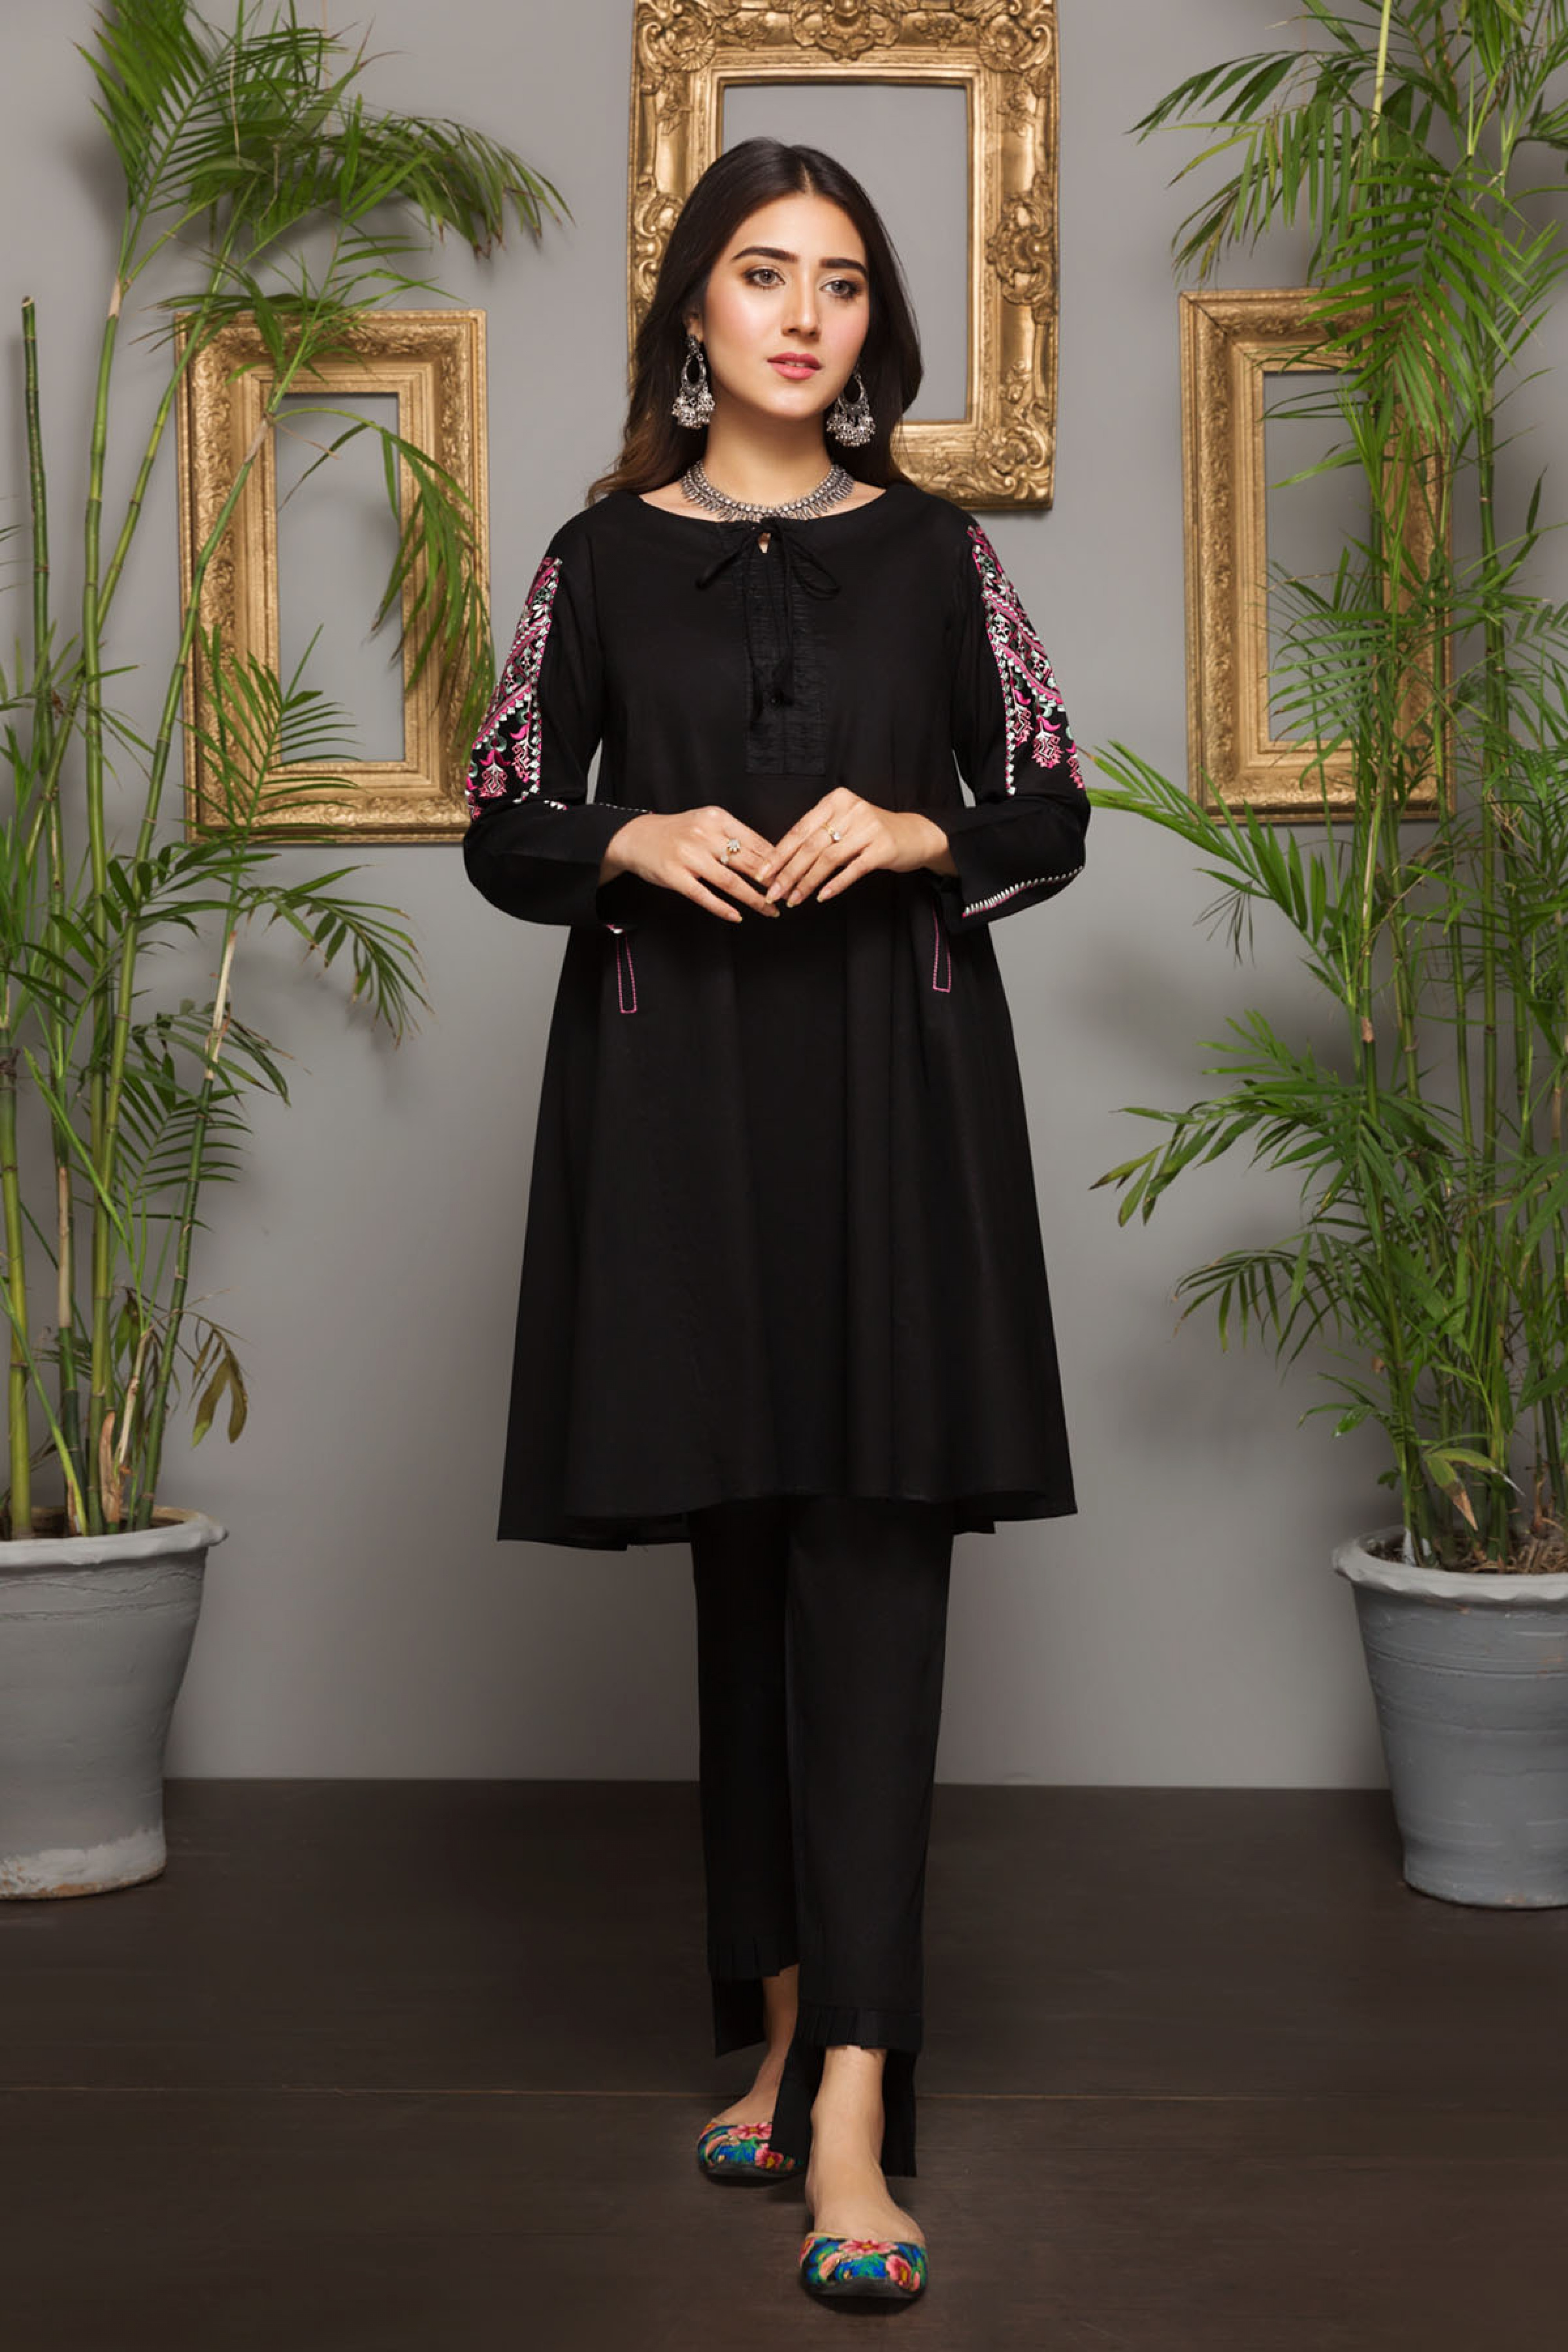 MINI ORCHID (EMBROIDERED KURTA)